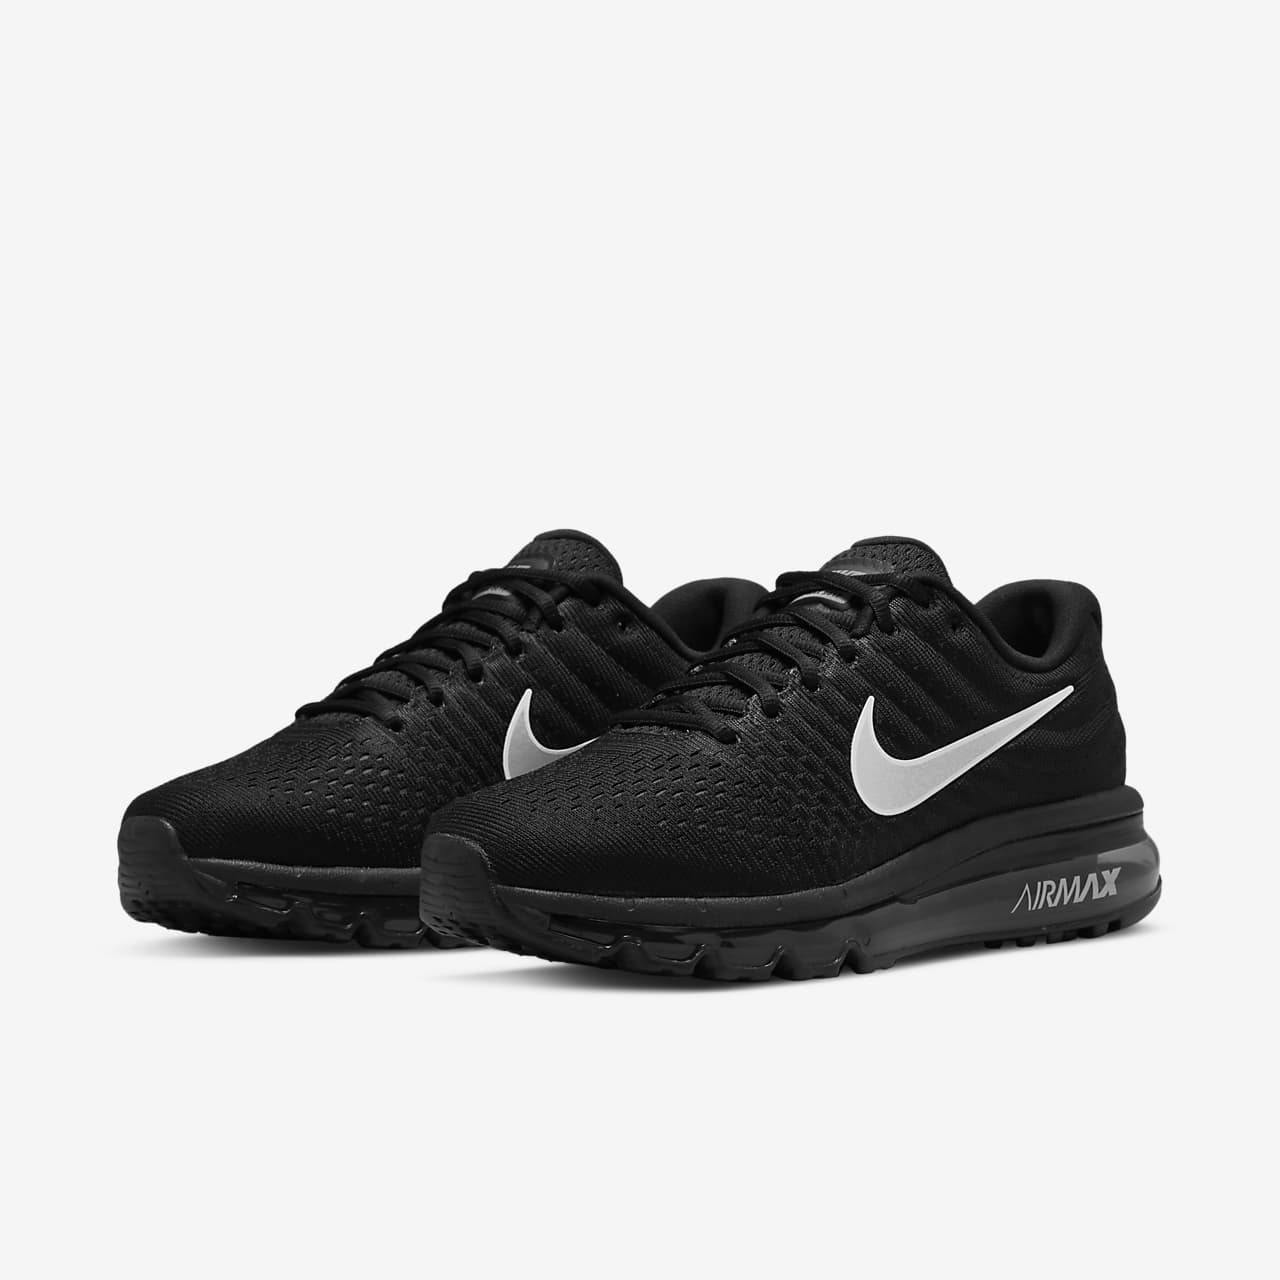 720bed878e4e Nike Air Max 2017 Women s Shoe. Nike.com NZ